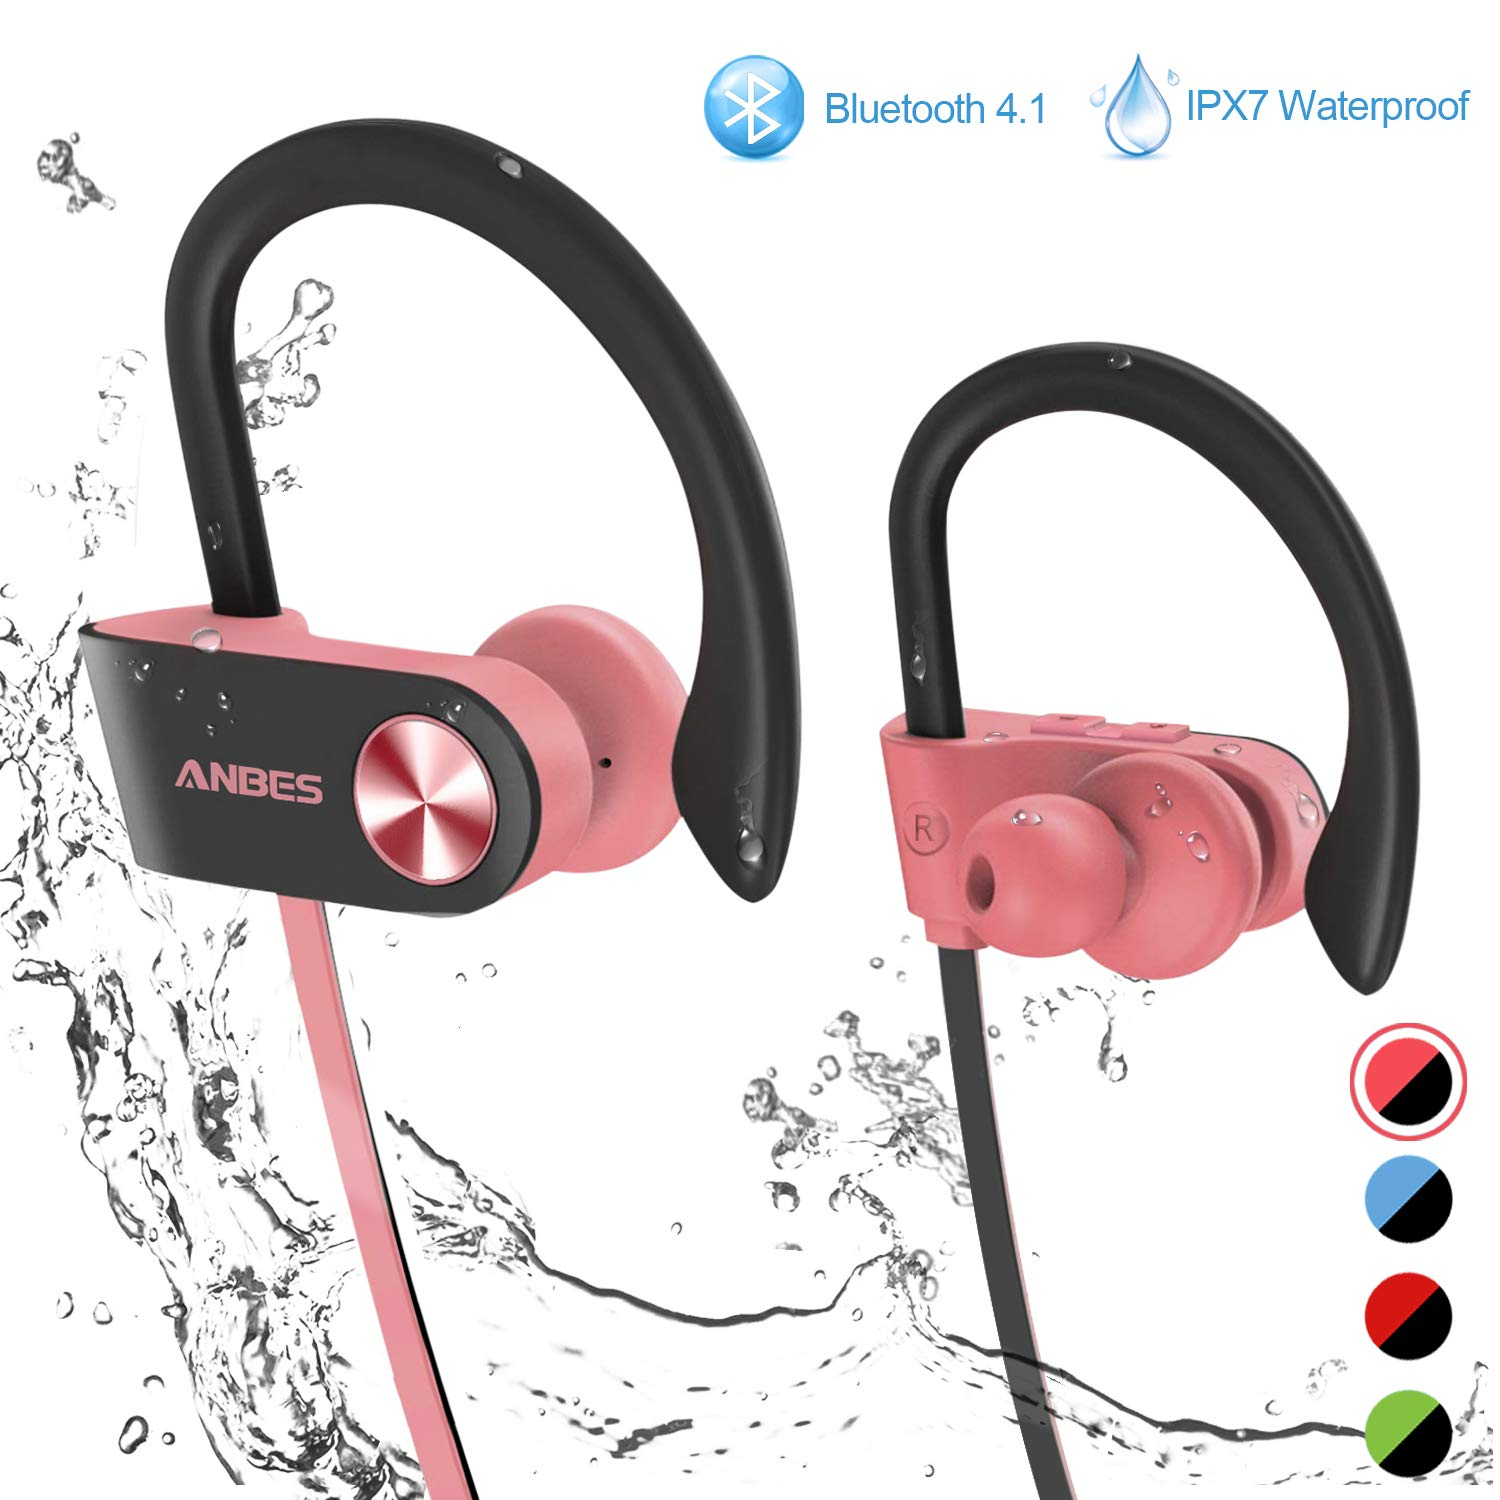 0fe8353ab09 Bluetooth Headphones, ANBES IPX7 Waterproof Wireless Earbuds, Sports Earbuds  with Ear Hooks & Mic